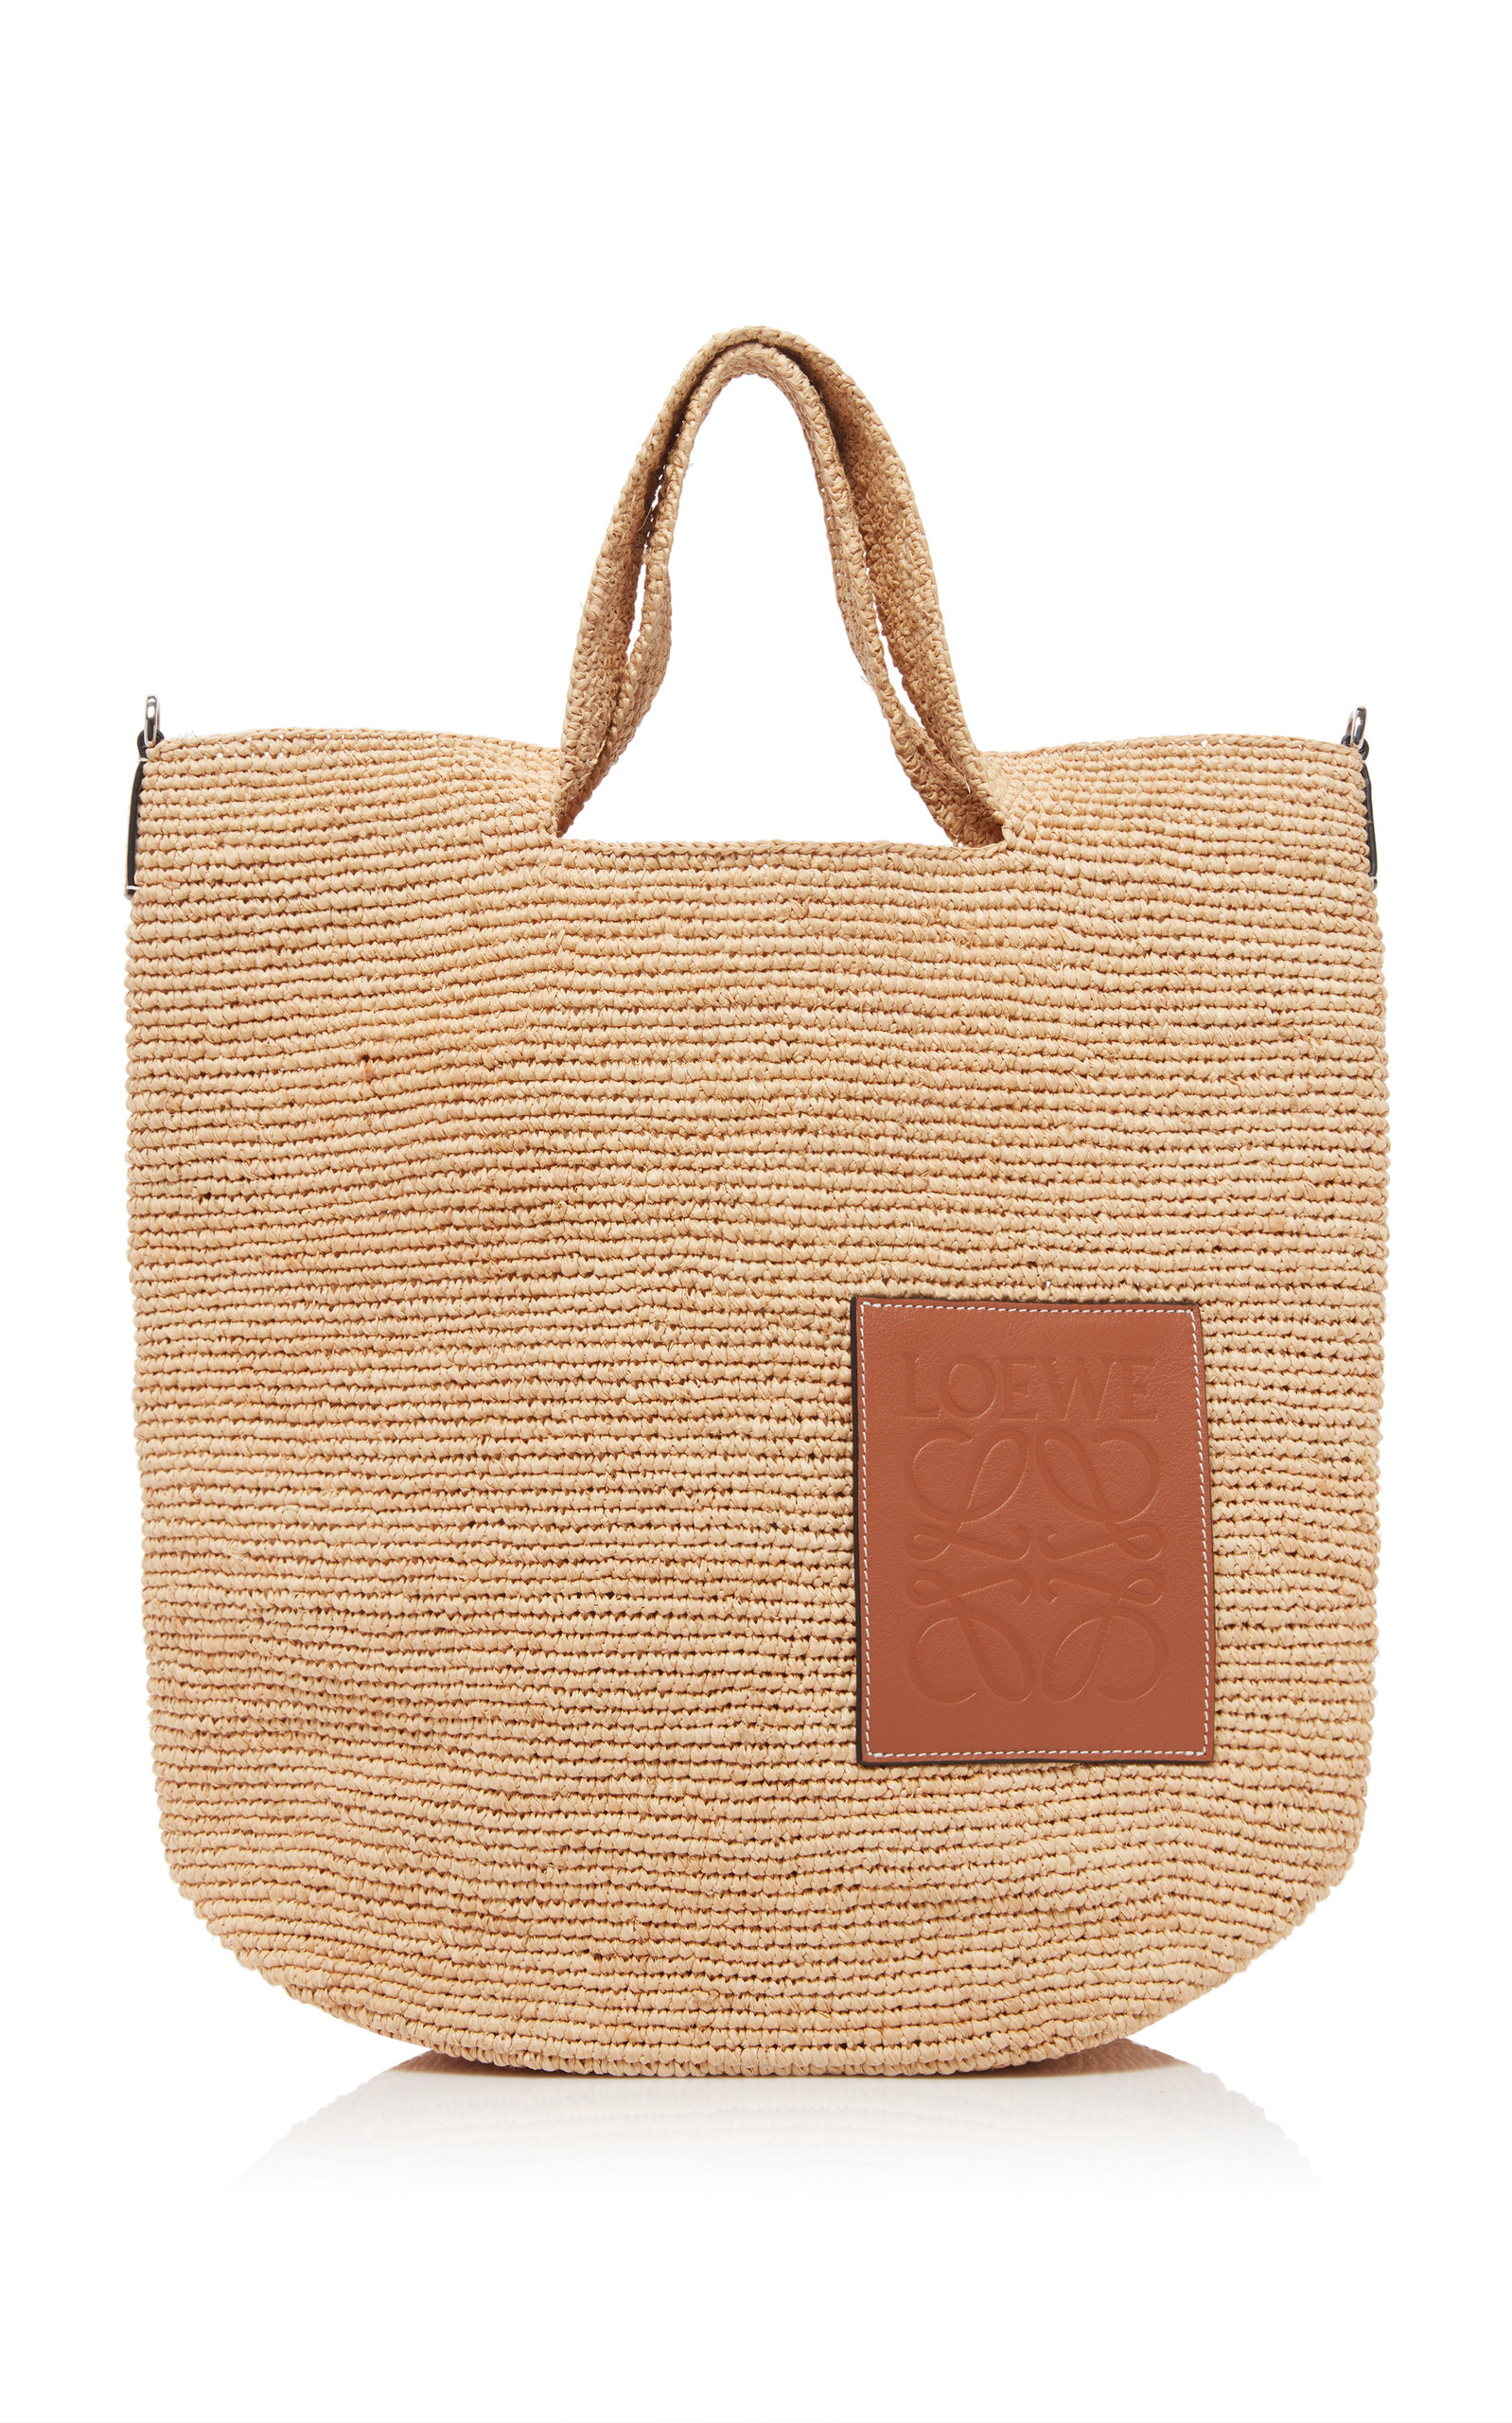 Expertly designed with impeccable craftsmanship, Loewe's 'Slit' tote is made in an oversized design for carrying your larger belongings. It's woven from natural raffia straw for a relaxed shape and embellished with a leather panel that's stamped with the label's iconic logo-anagram. Attach the optional shoulder strap for wear across the body.